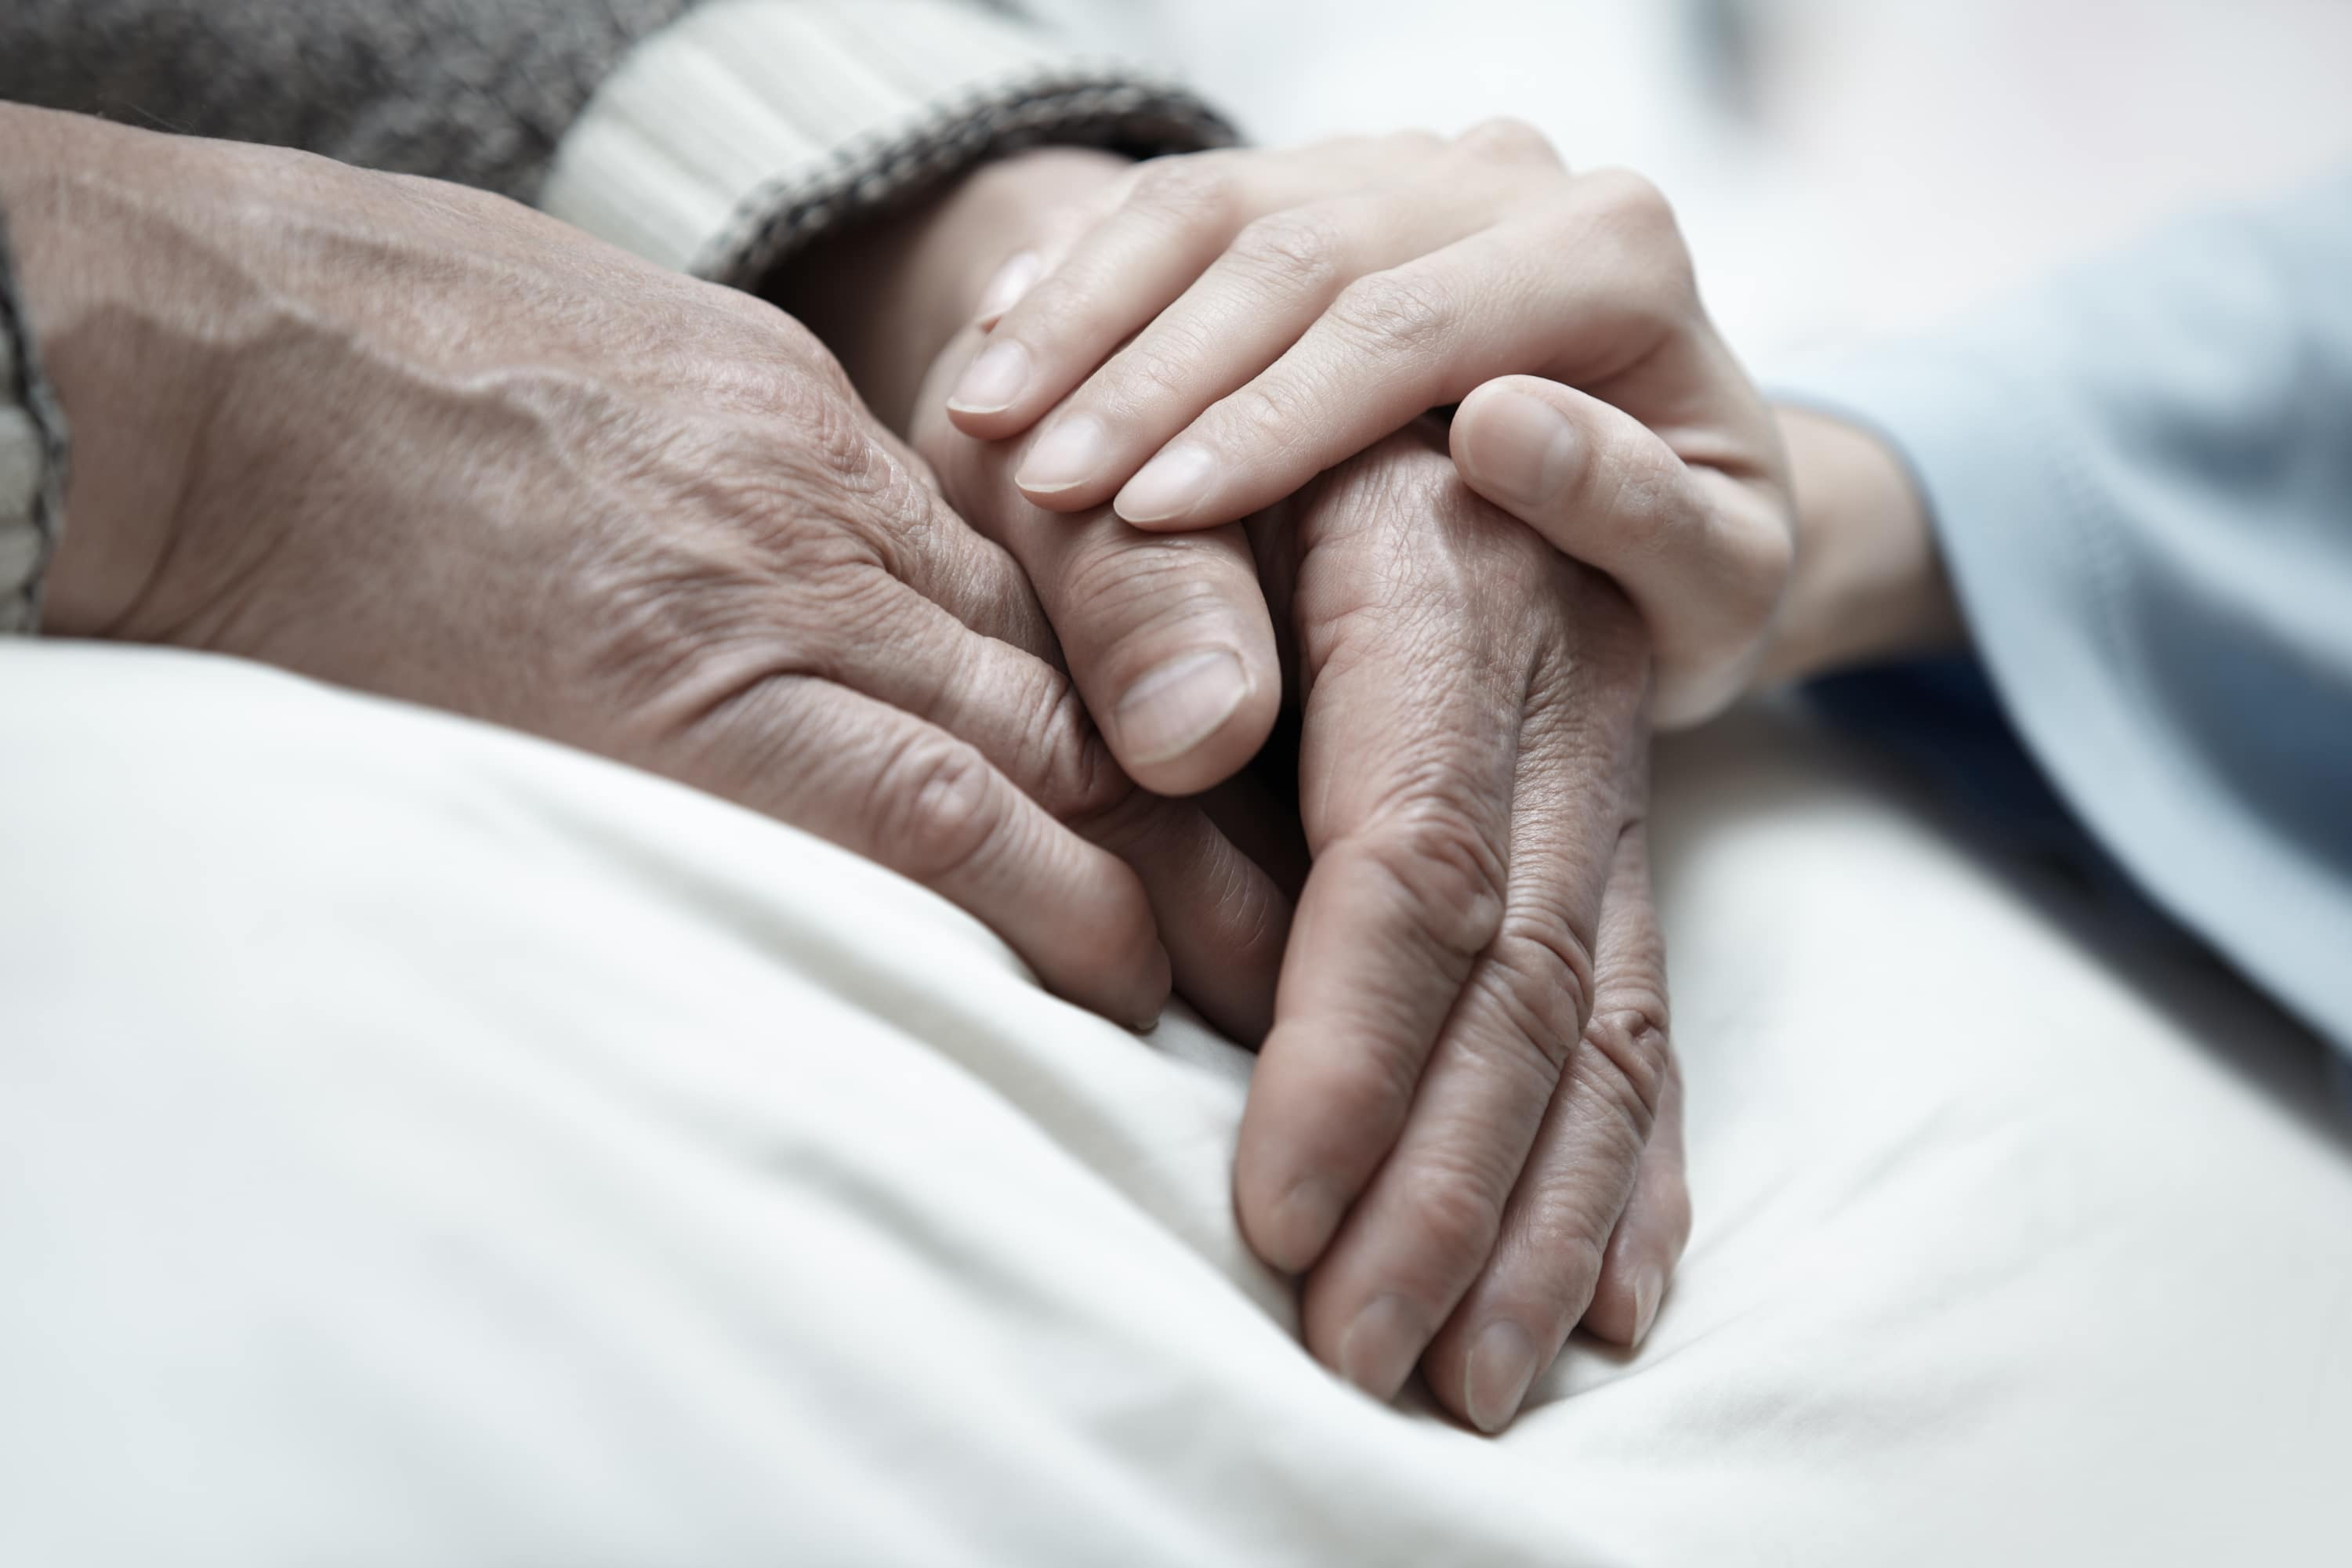 Emergency Plans Putting Nursing Homes at Risk